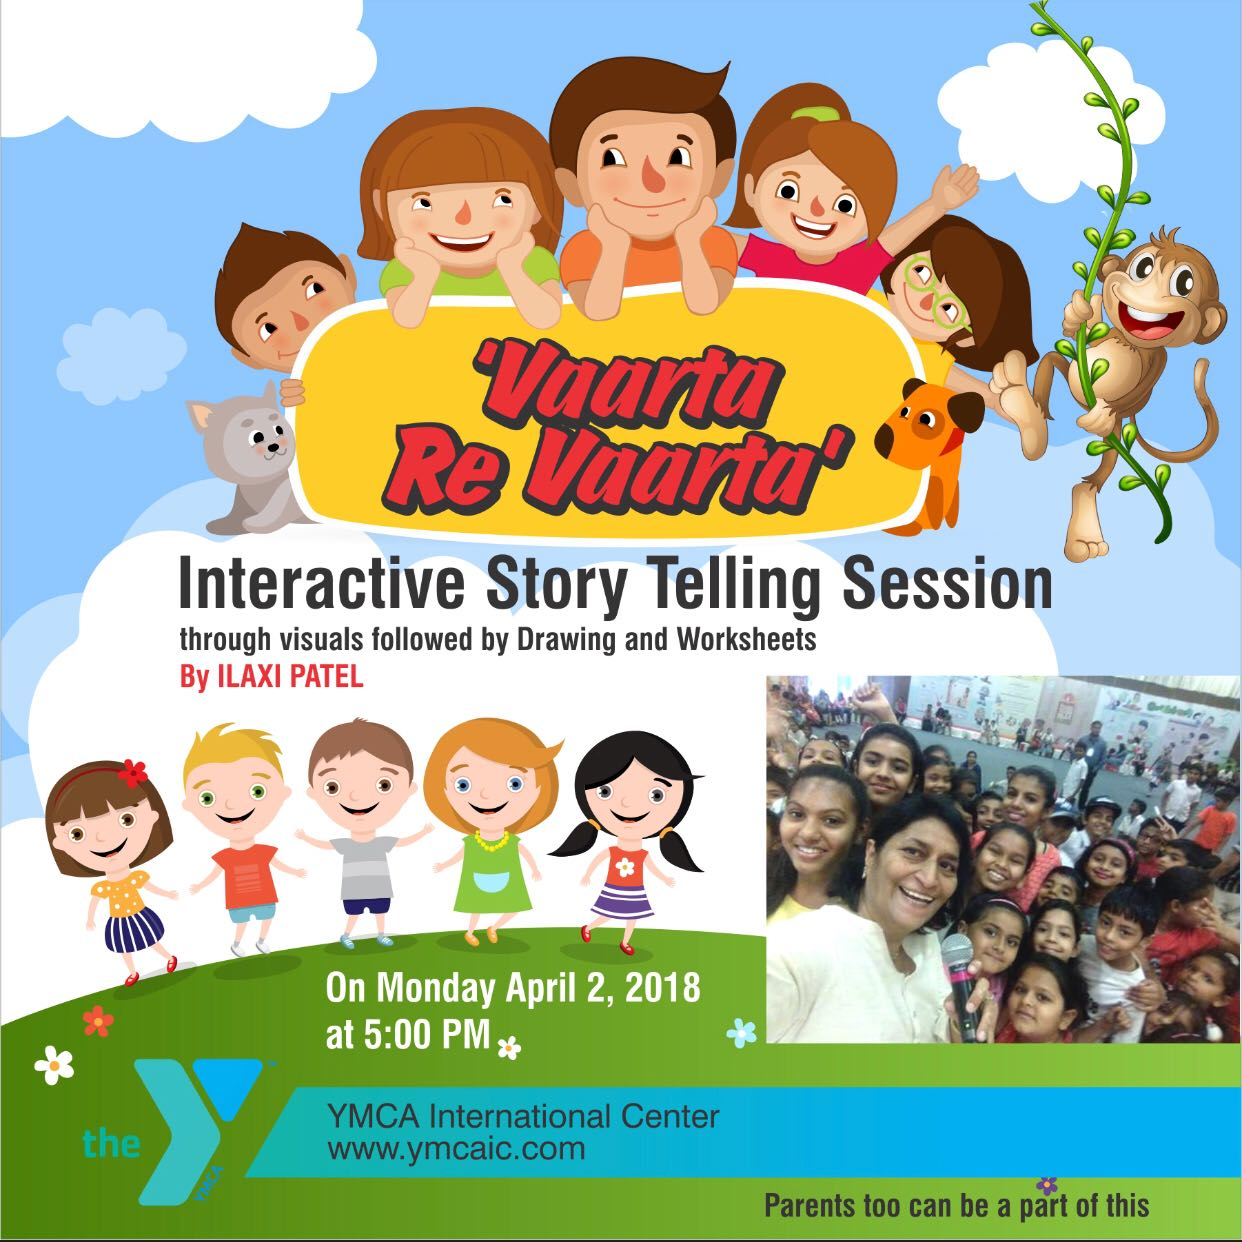 Step Into The World Of Imagination Story Telling